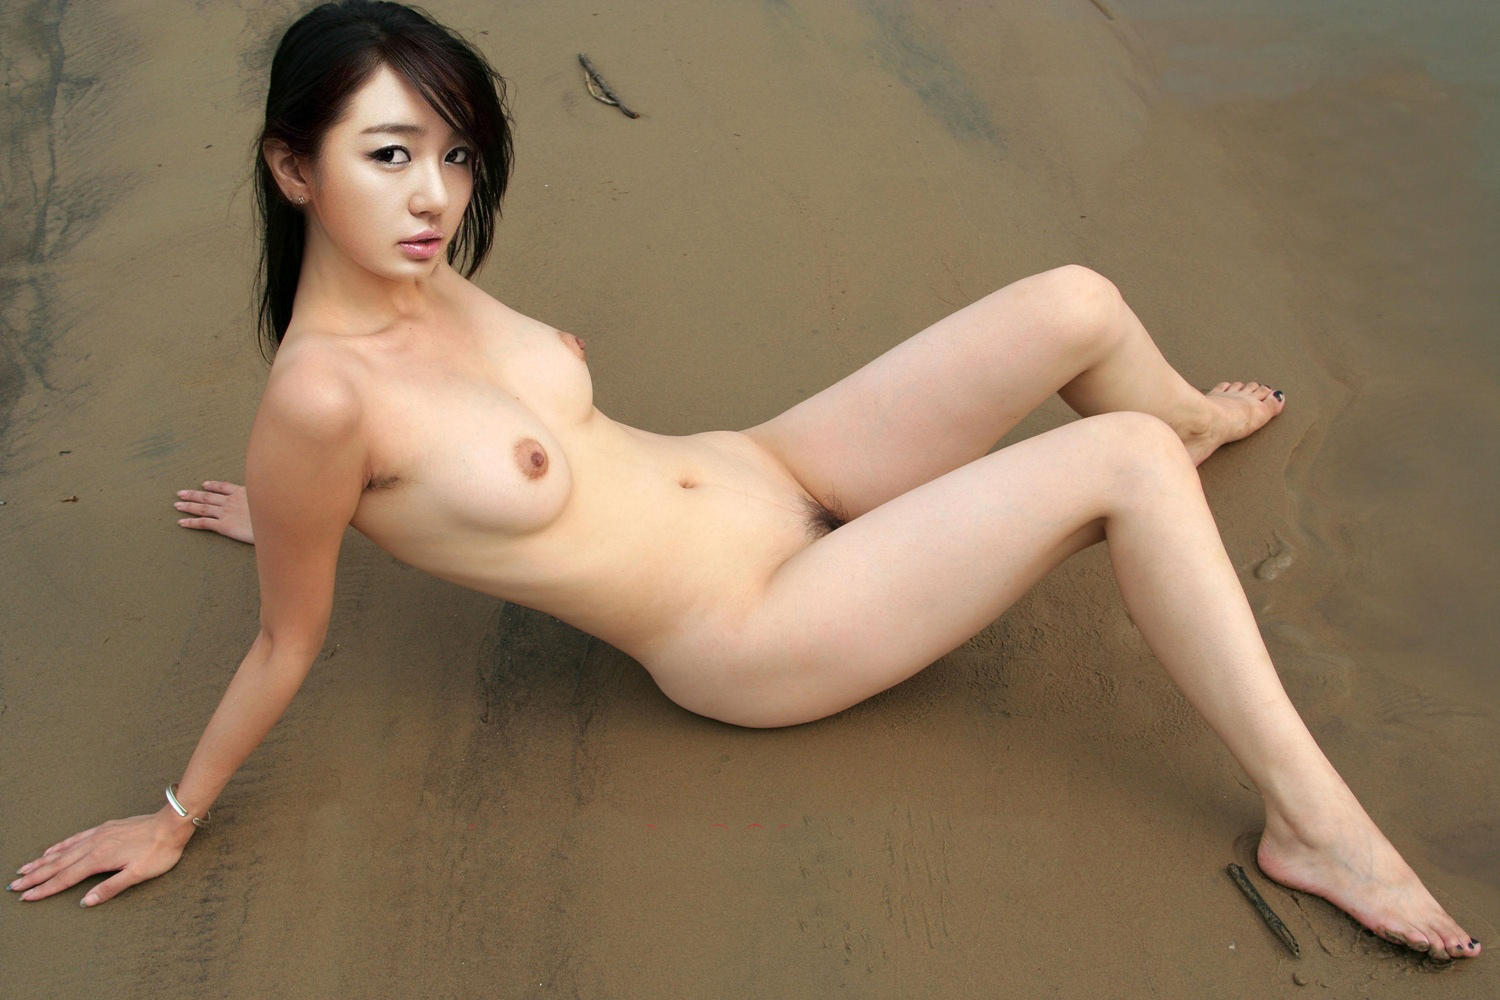 Naked boobs skinny dipping